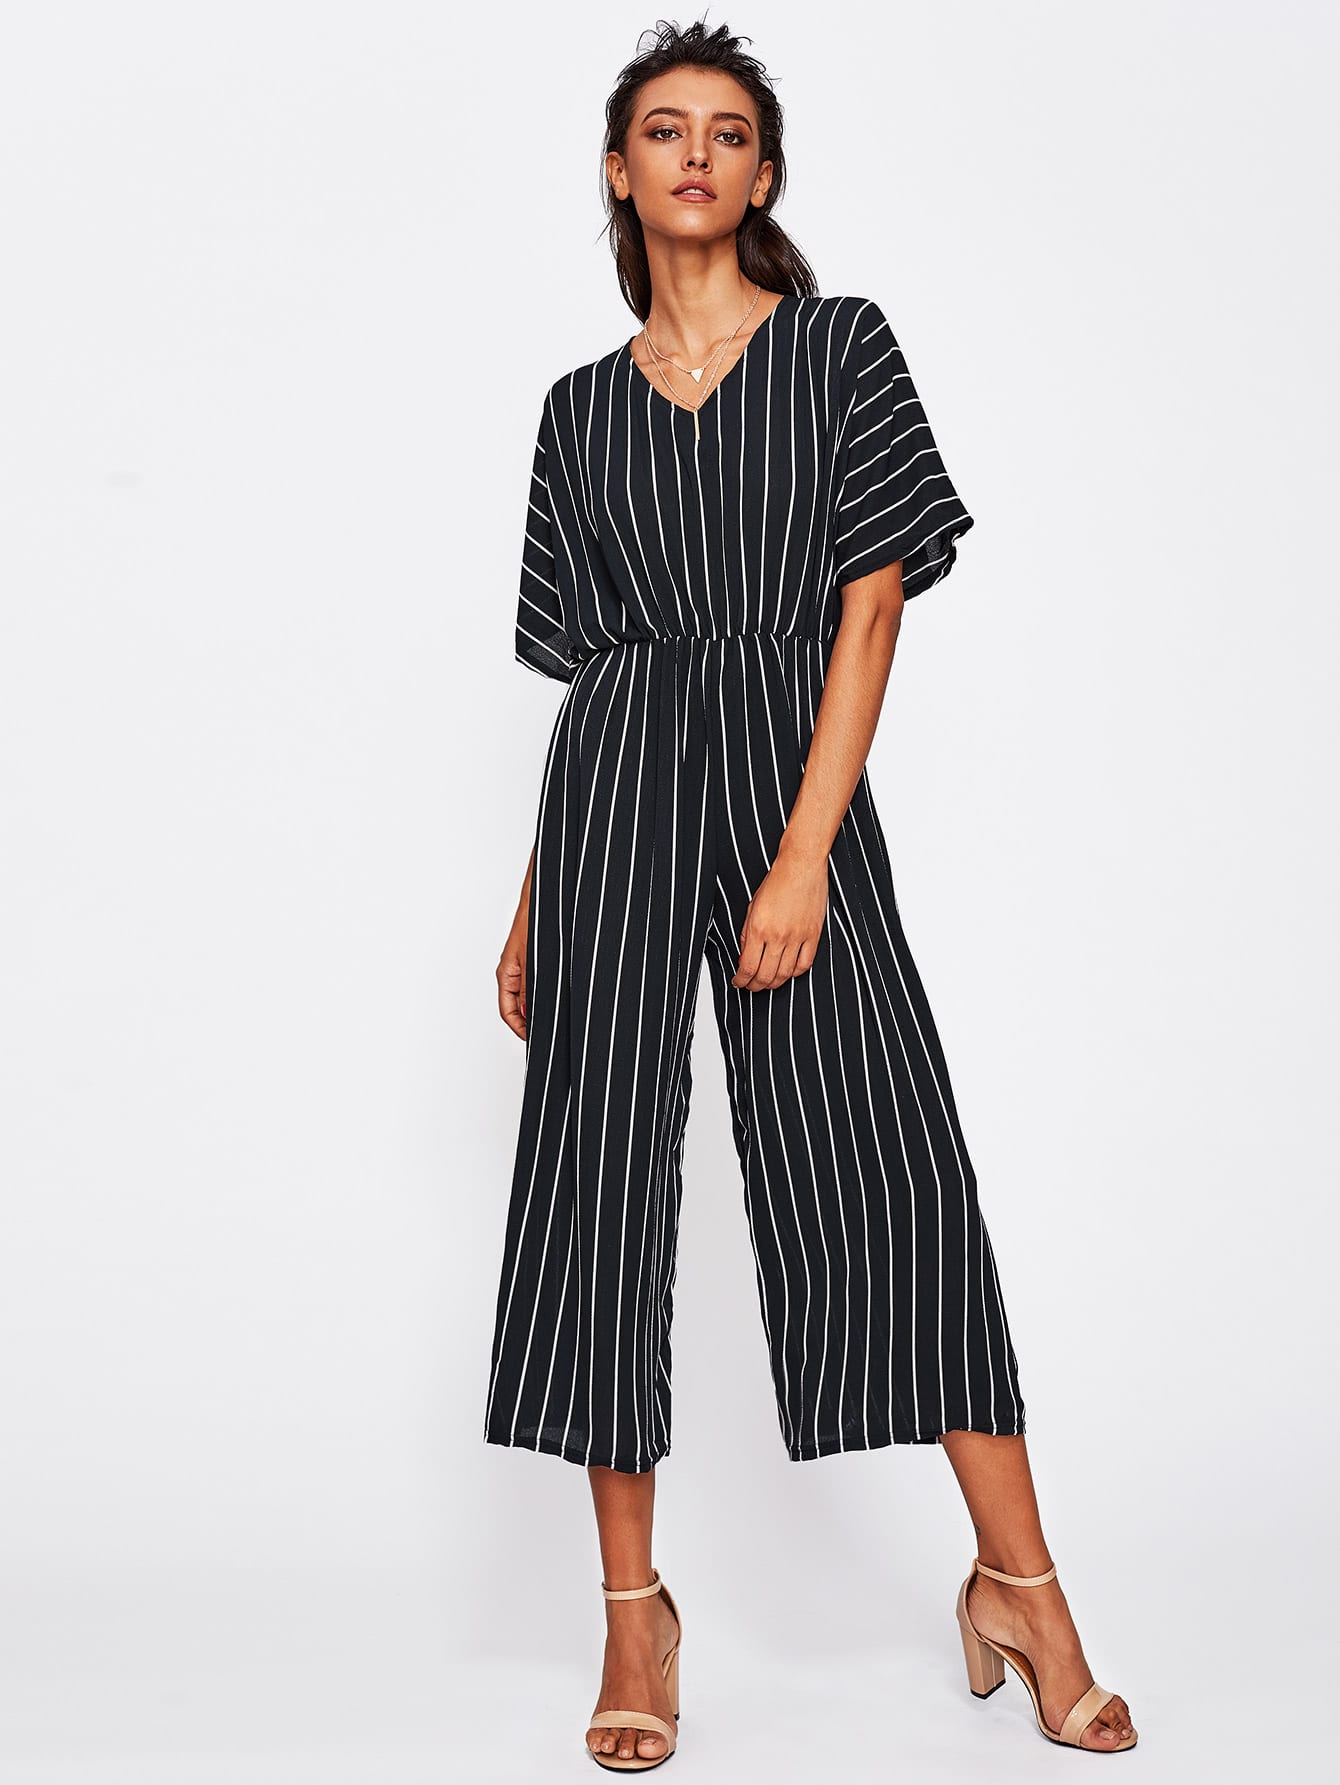 Overlap Tie Back Vertical Striped Wide Leg Jumpsuit shirred panel wide leg striped jumpsuit